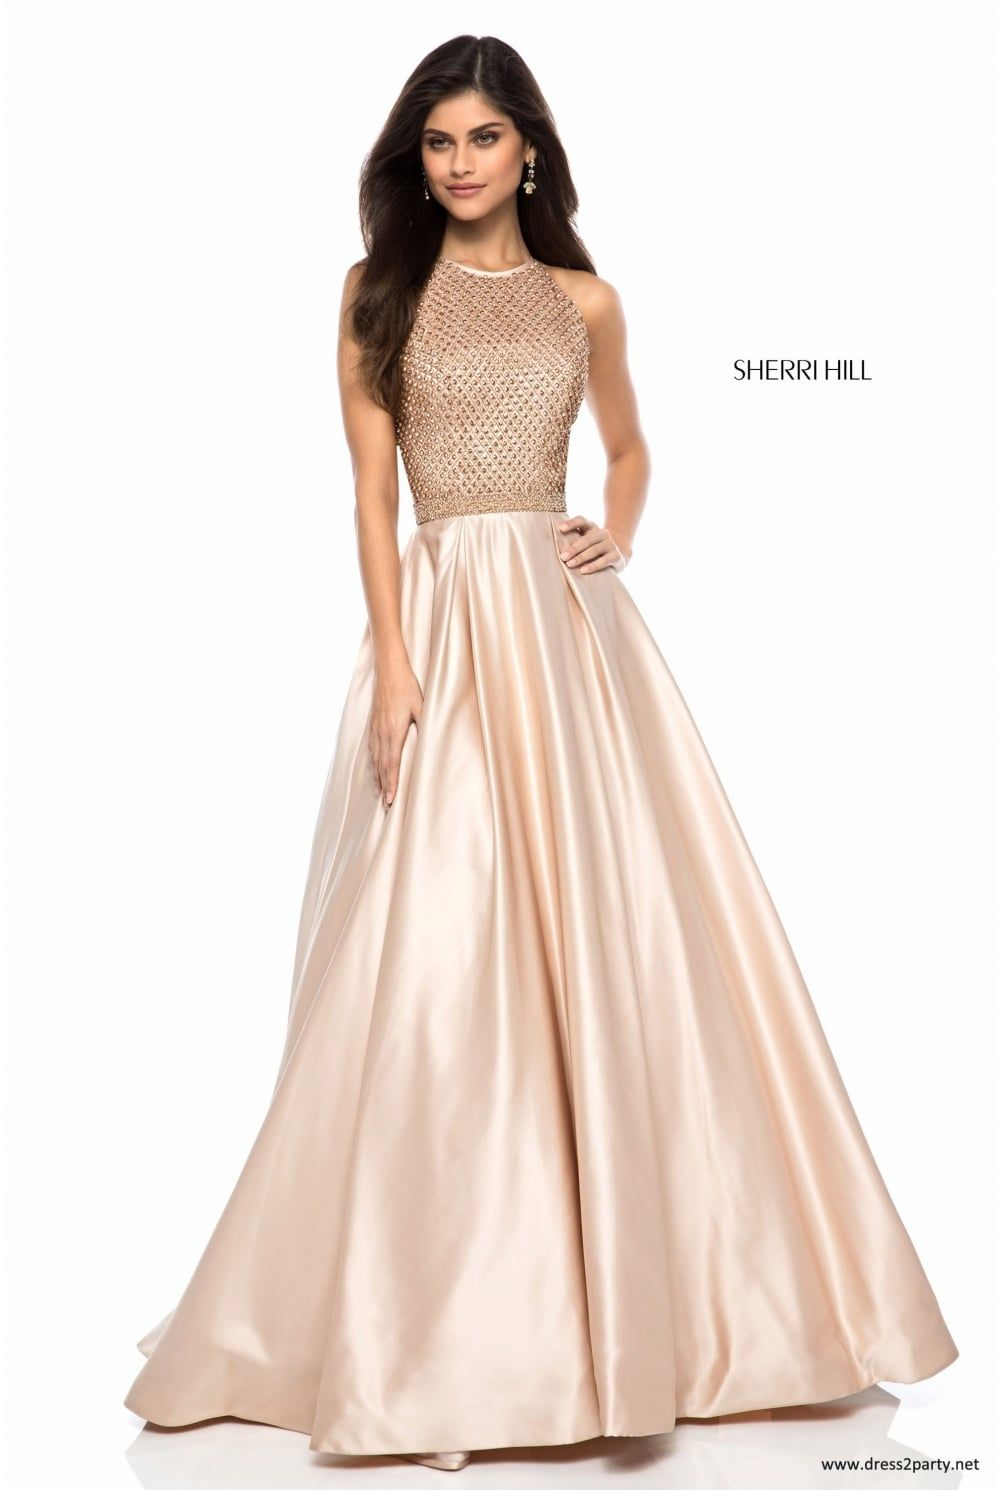 824f4136918 Halter neck satin ball gown from the Sherri Hill 2018 collection. We love  the nude colour in this style